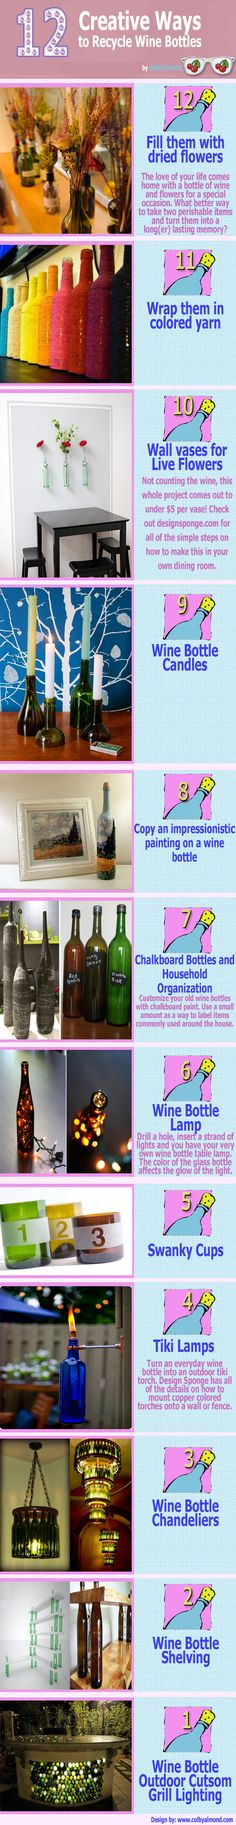 12 creative ways to reuse empty wine bottles... AWESOME!